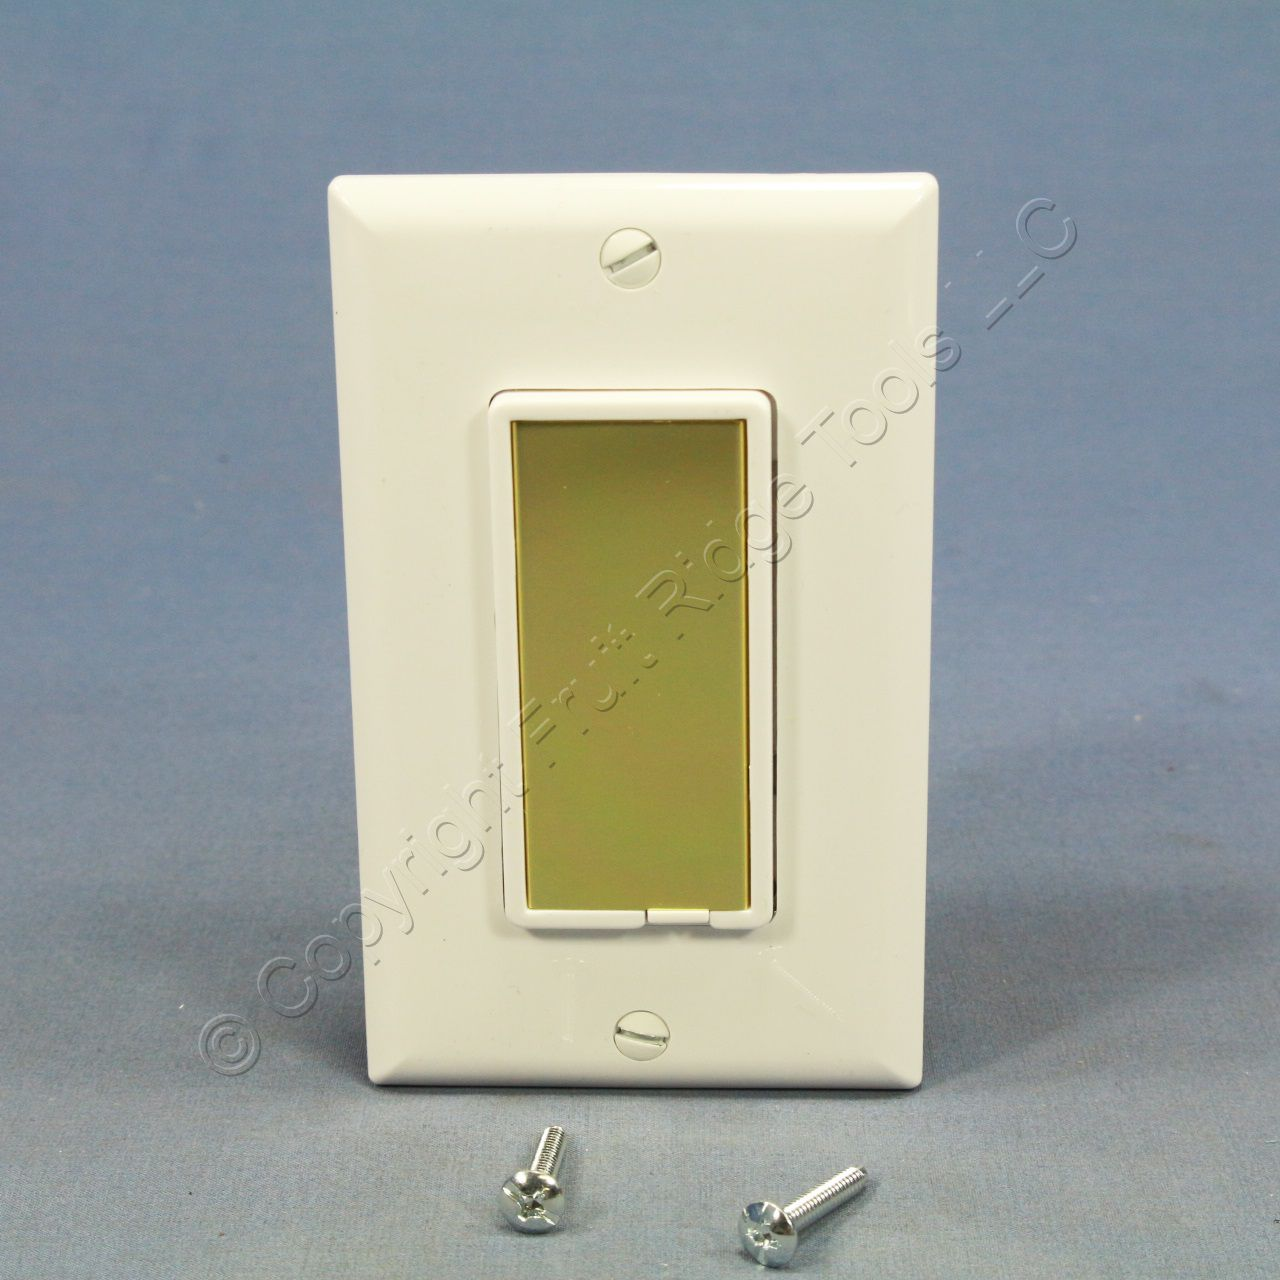 Cooper White Decorator Touch Pad Master Dimmer Switch 600w